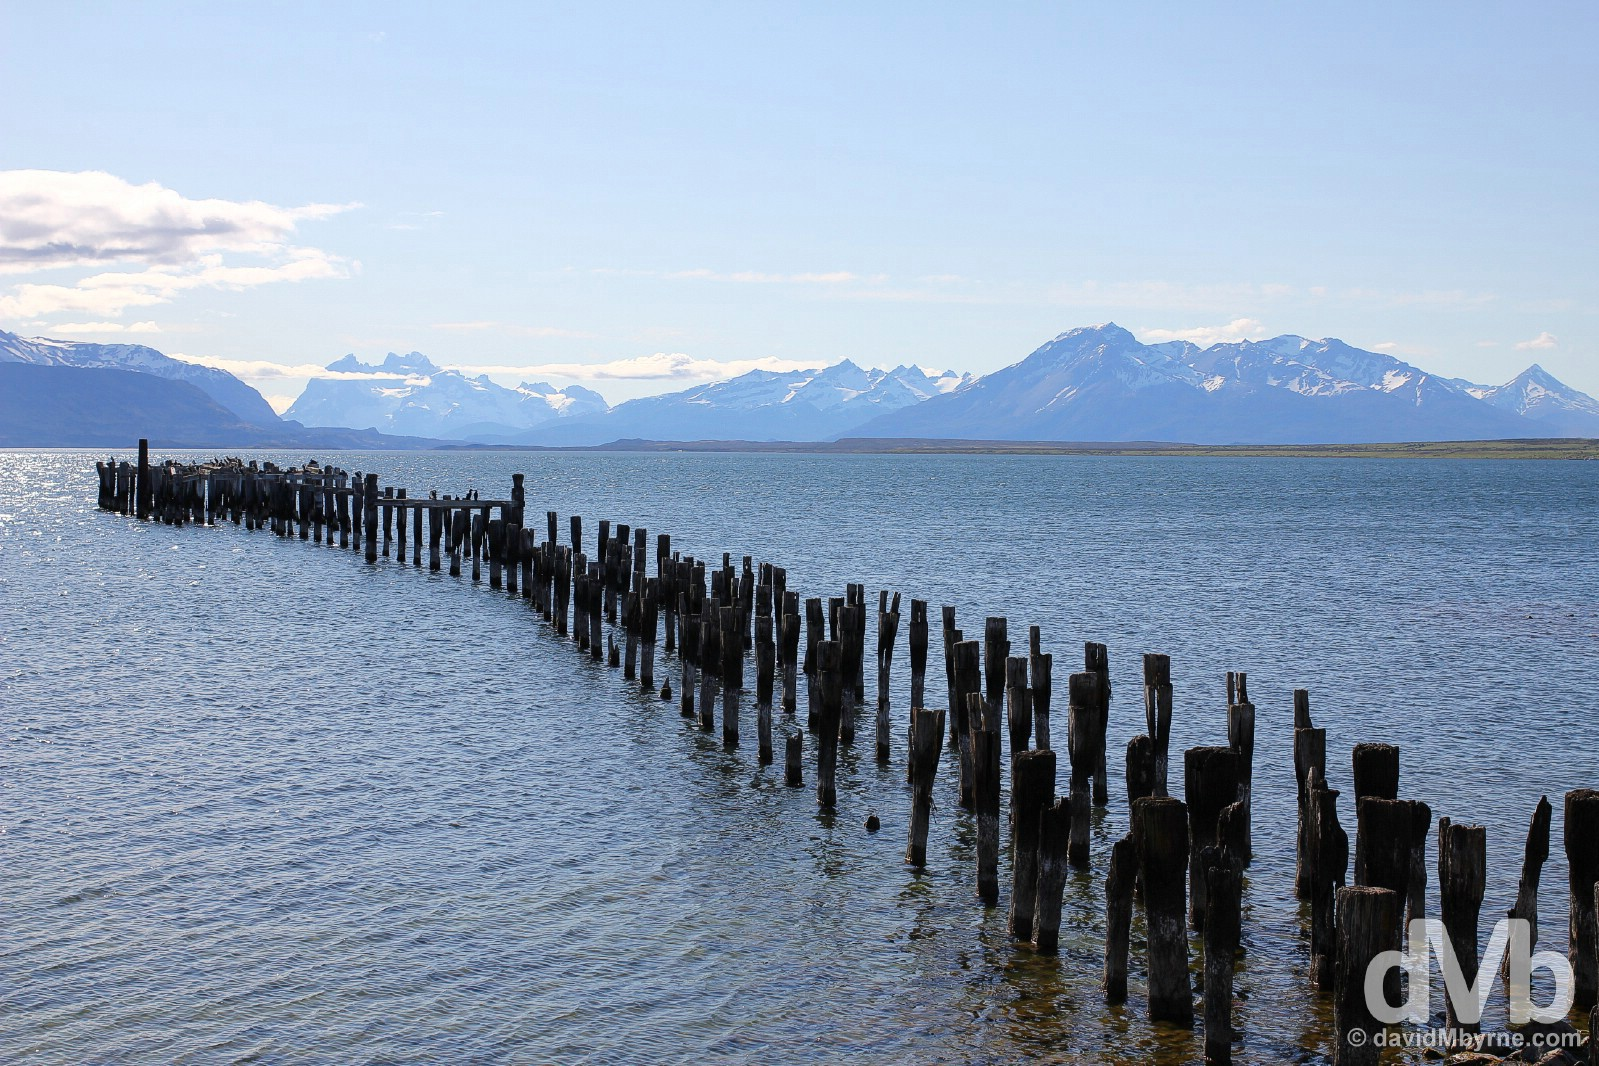 The remains of the Braun & Blanchard wharf in Seno Ultima Esperanza (Last Hope Sound) with the peaks of Torres Del Paine in the distance. Puerto Natales, southern Patagonian Chile. November 6, 2015.